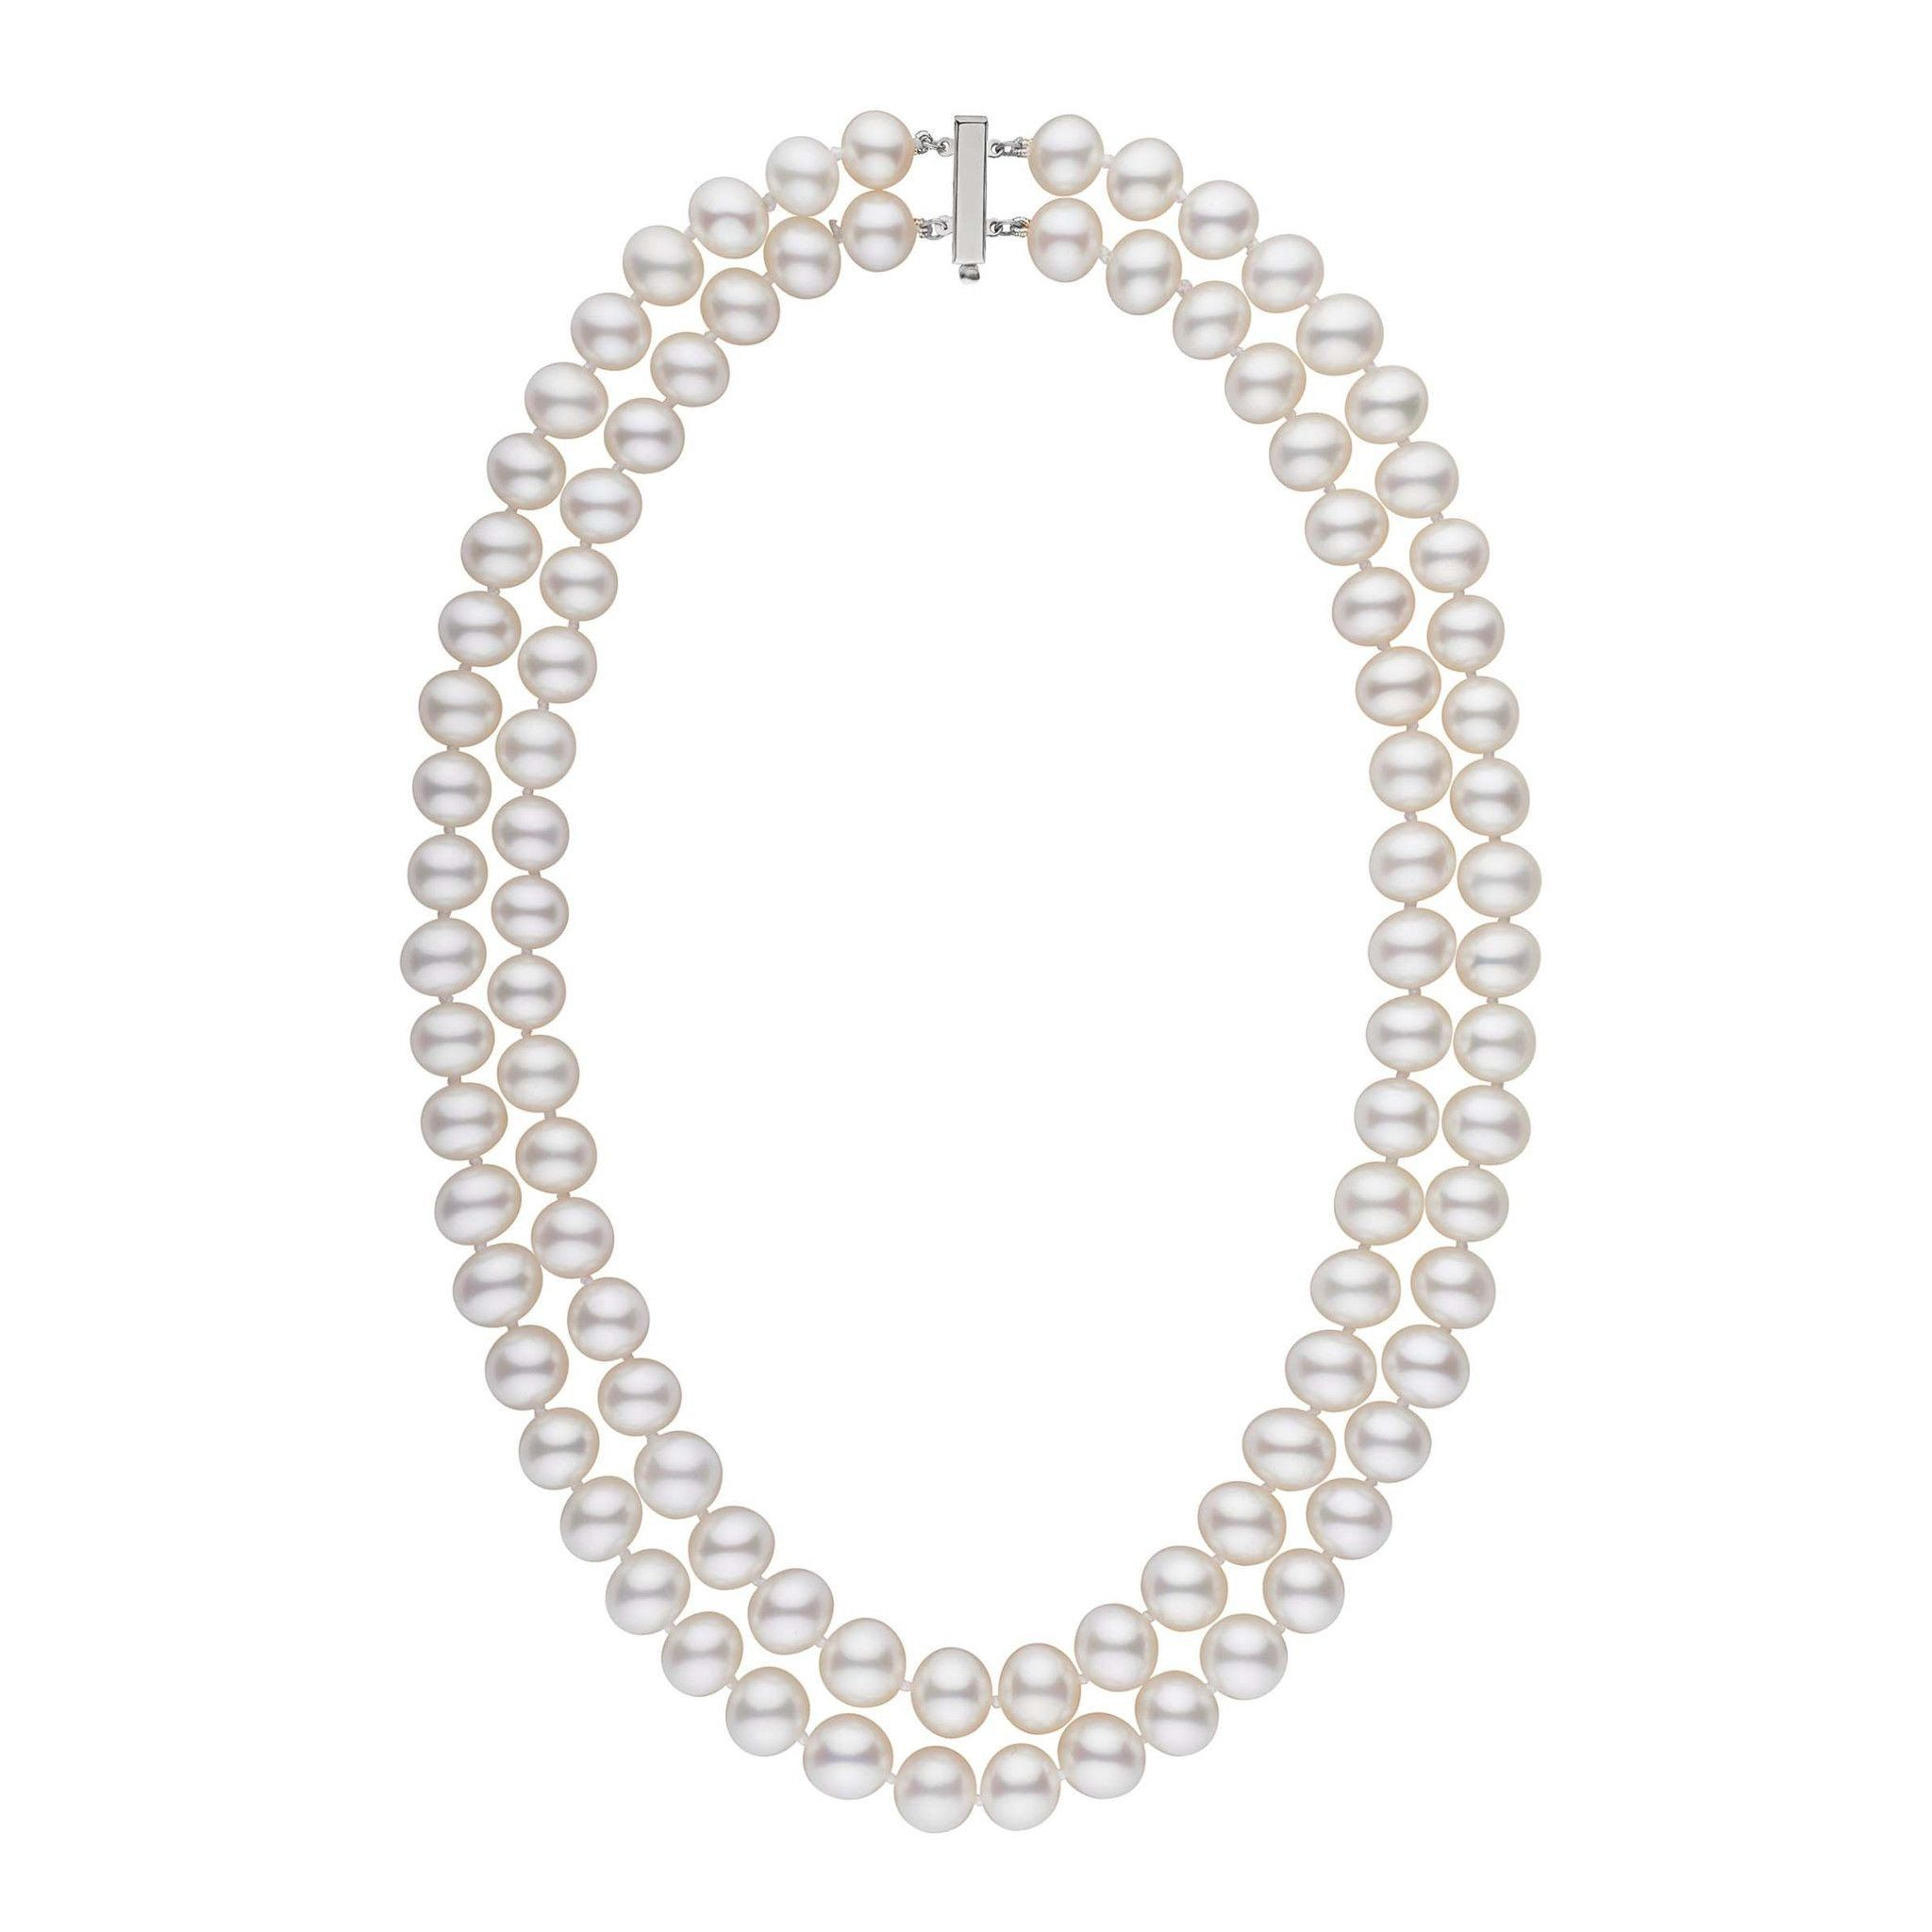 8.5-9.0 mm AA+ Double Strand White Freshwater Pearl Necklace